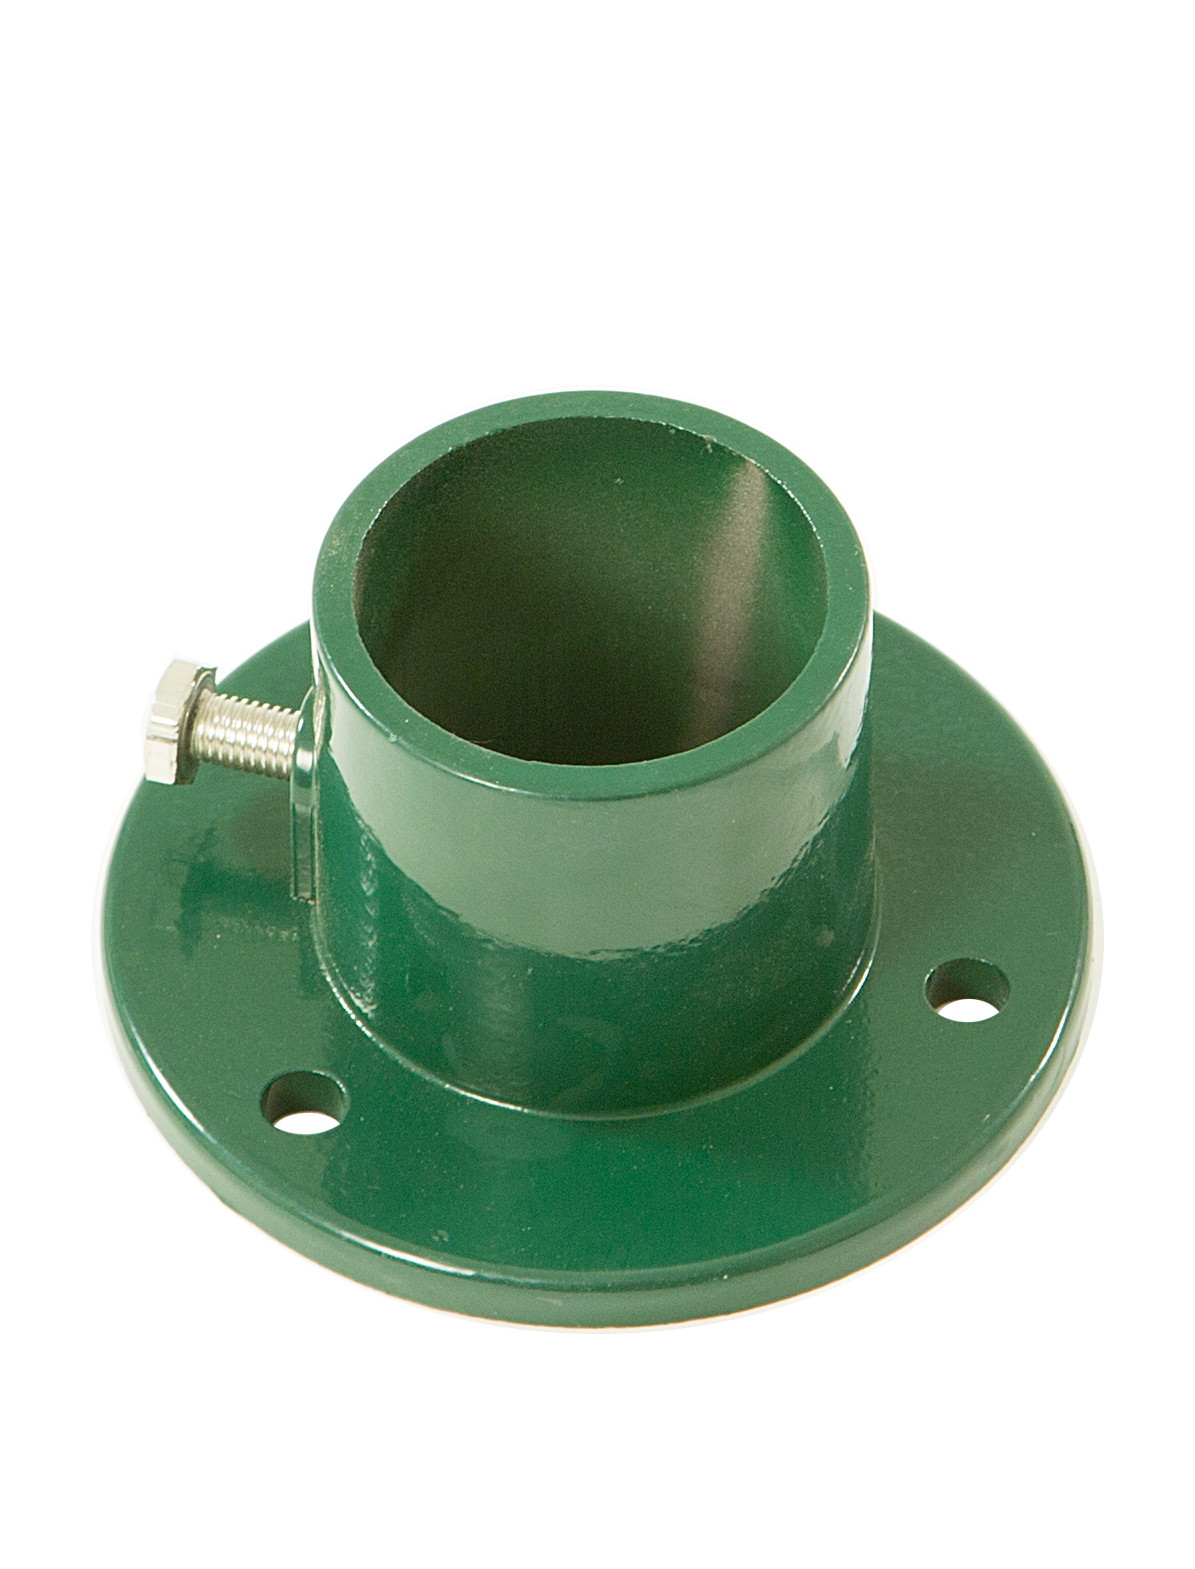 Fencing Post Holder Fencing System Green Base Plate